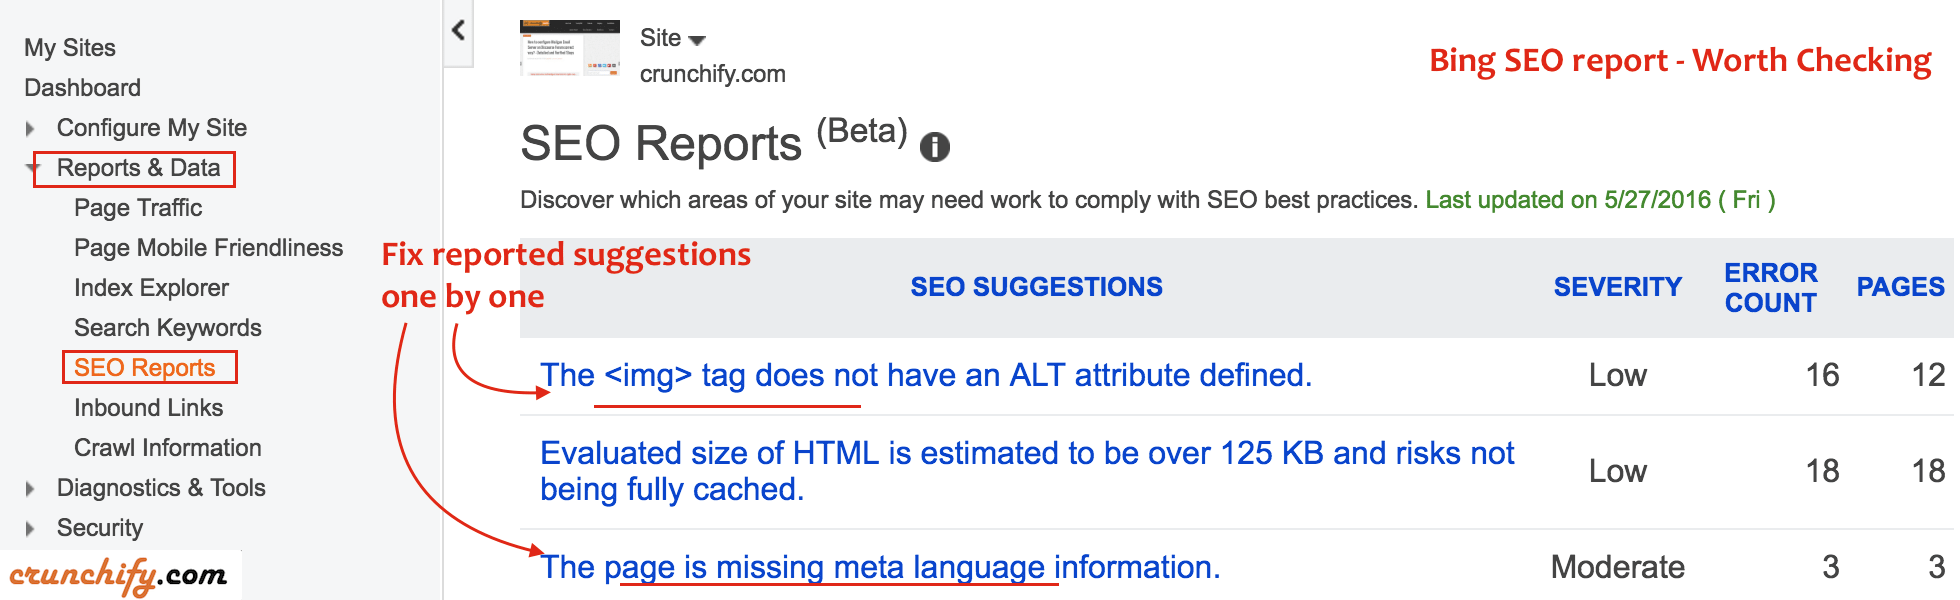 Bing SEO report - Worth Checking